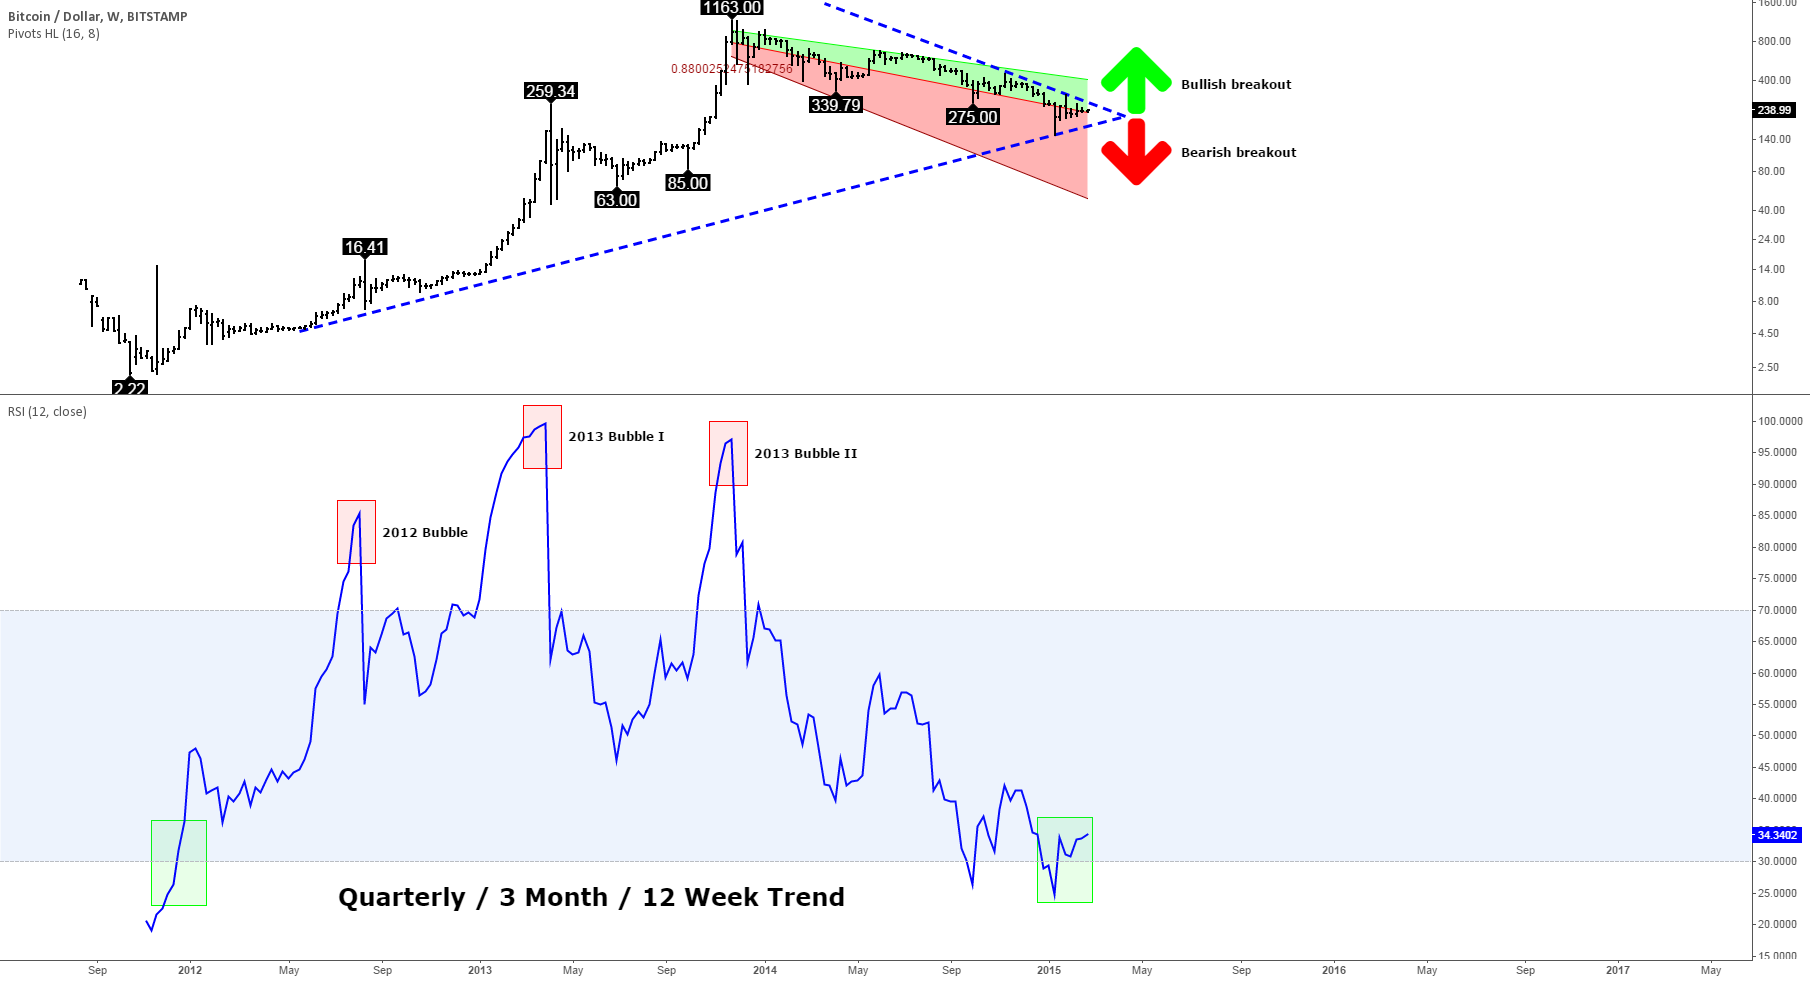 Bitcoin long-term outlook 2015 with RSI quarterly price trend